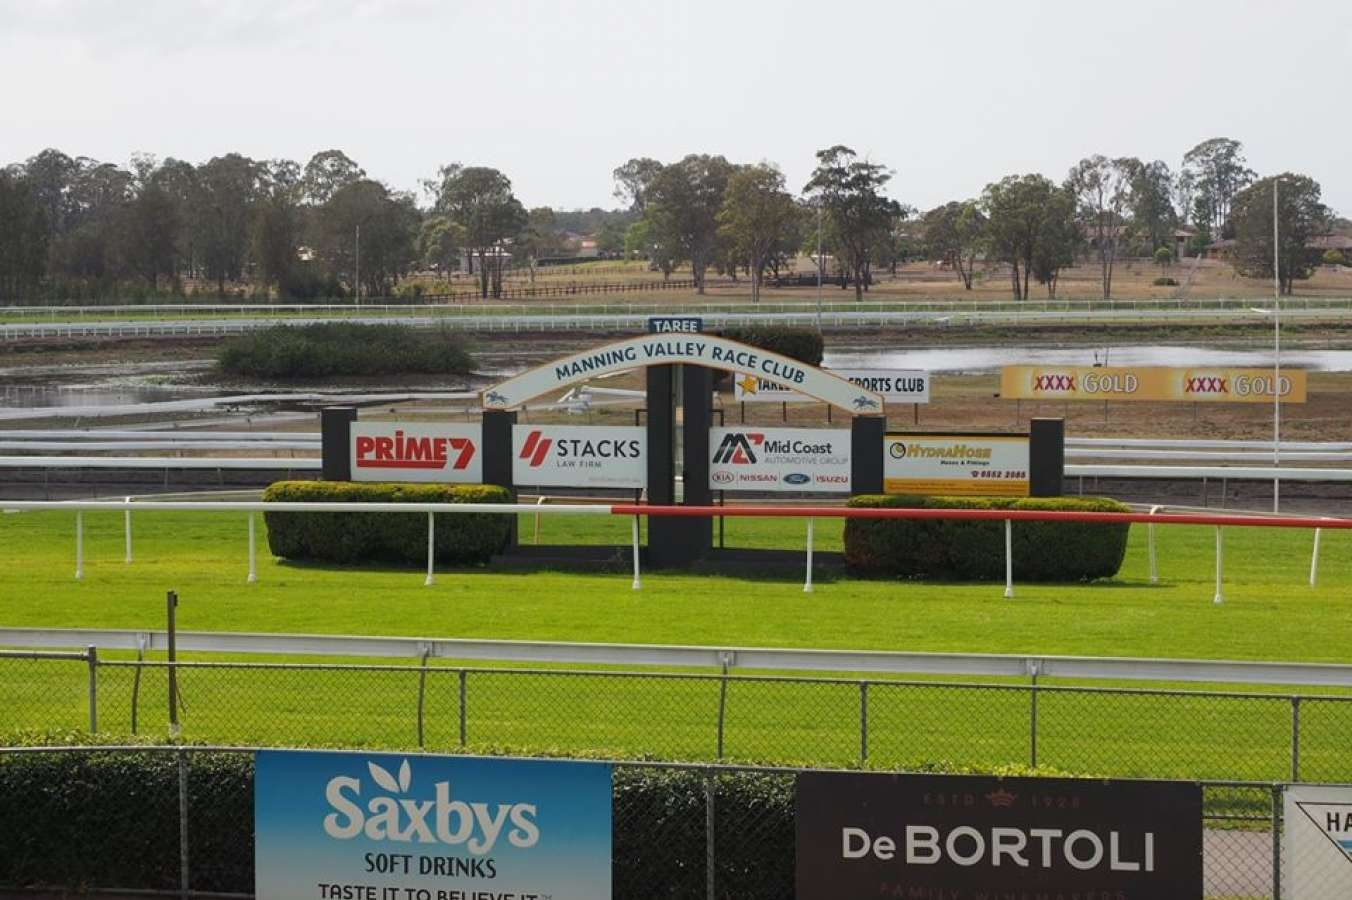 Taree, trials called off due to smoke haze - Punters